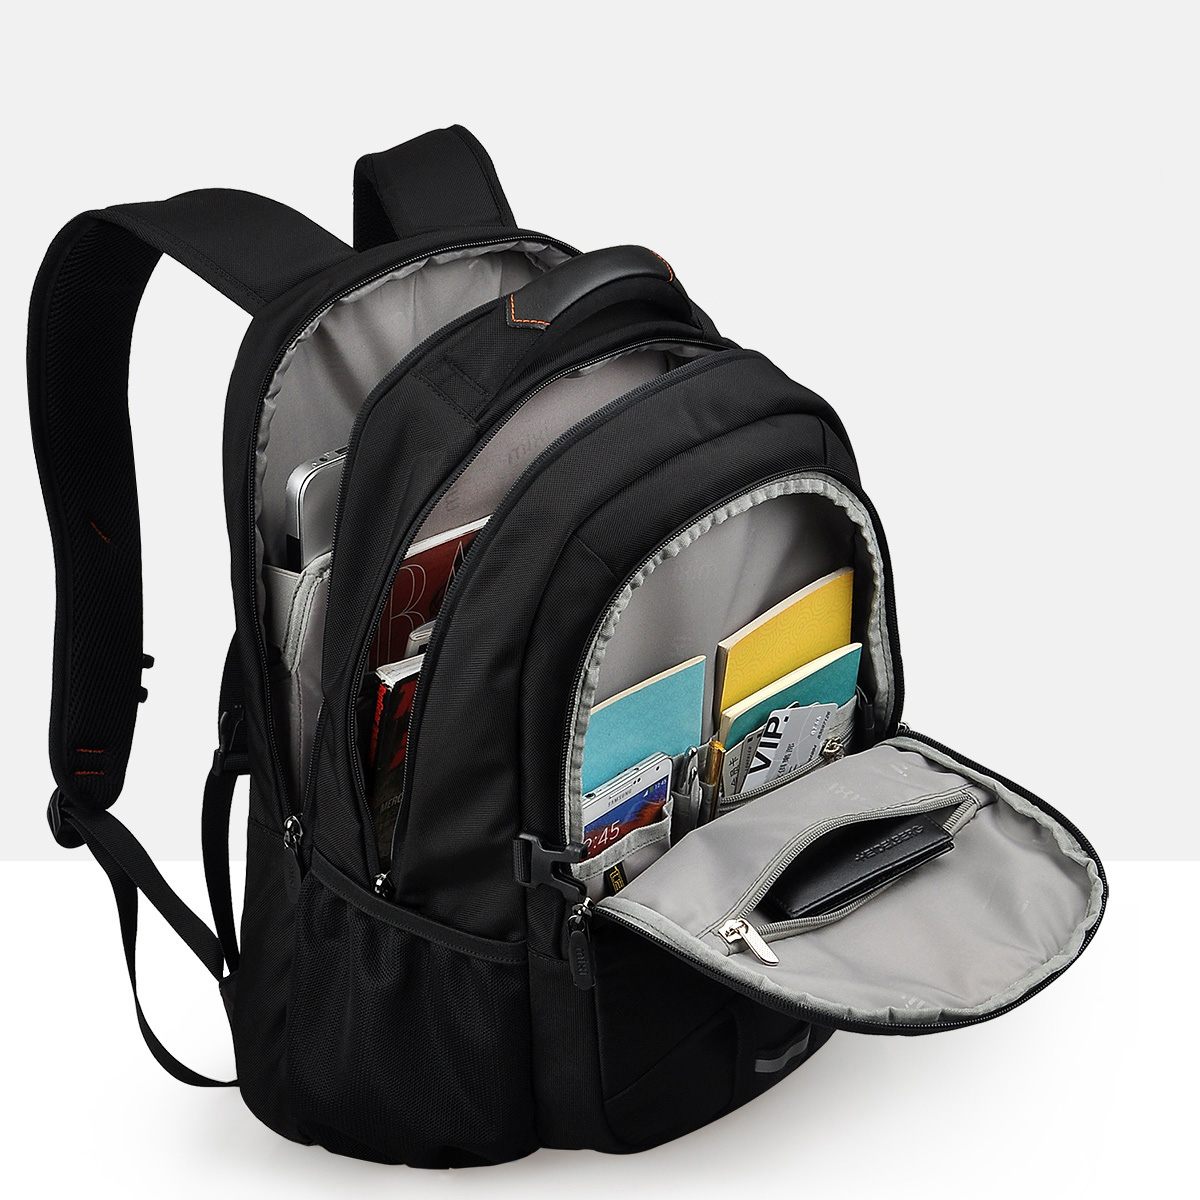 Travel Laptop Backpack Anti Theft Durable College School Backpack Water Resistant Slim Business Computer Bag